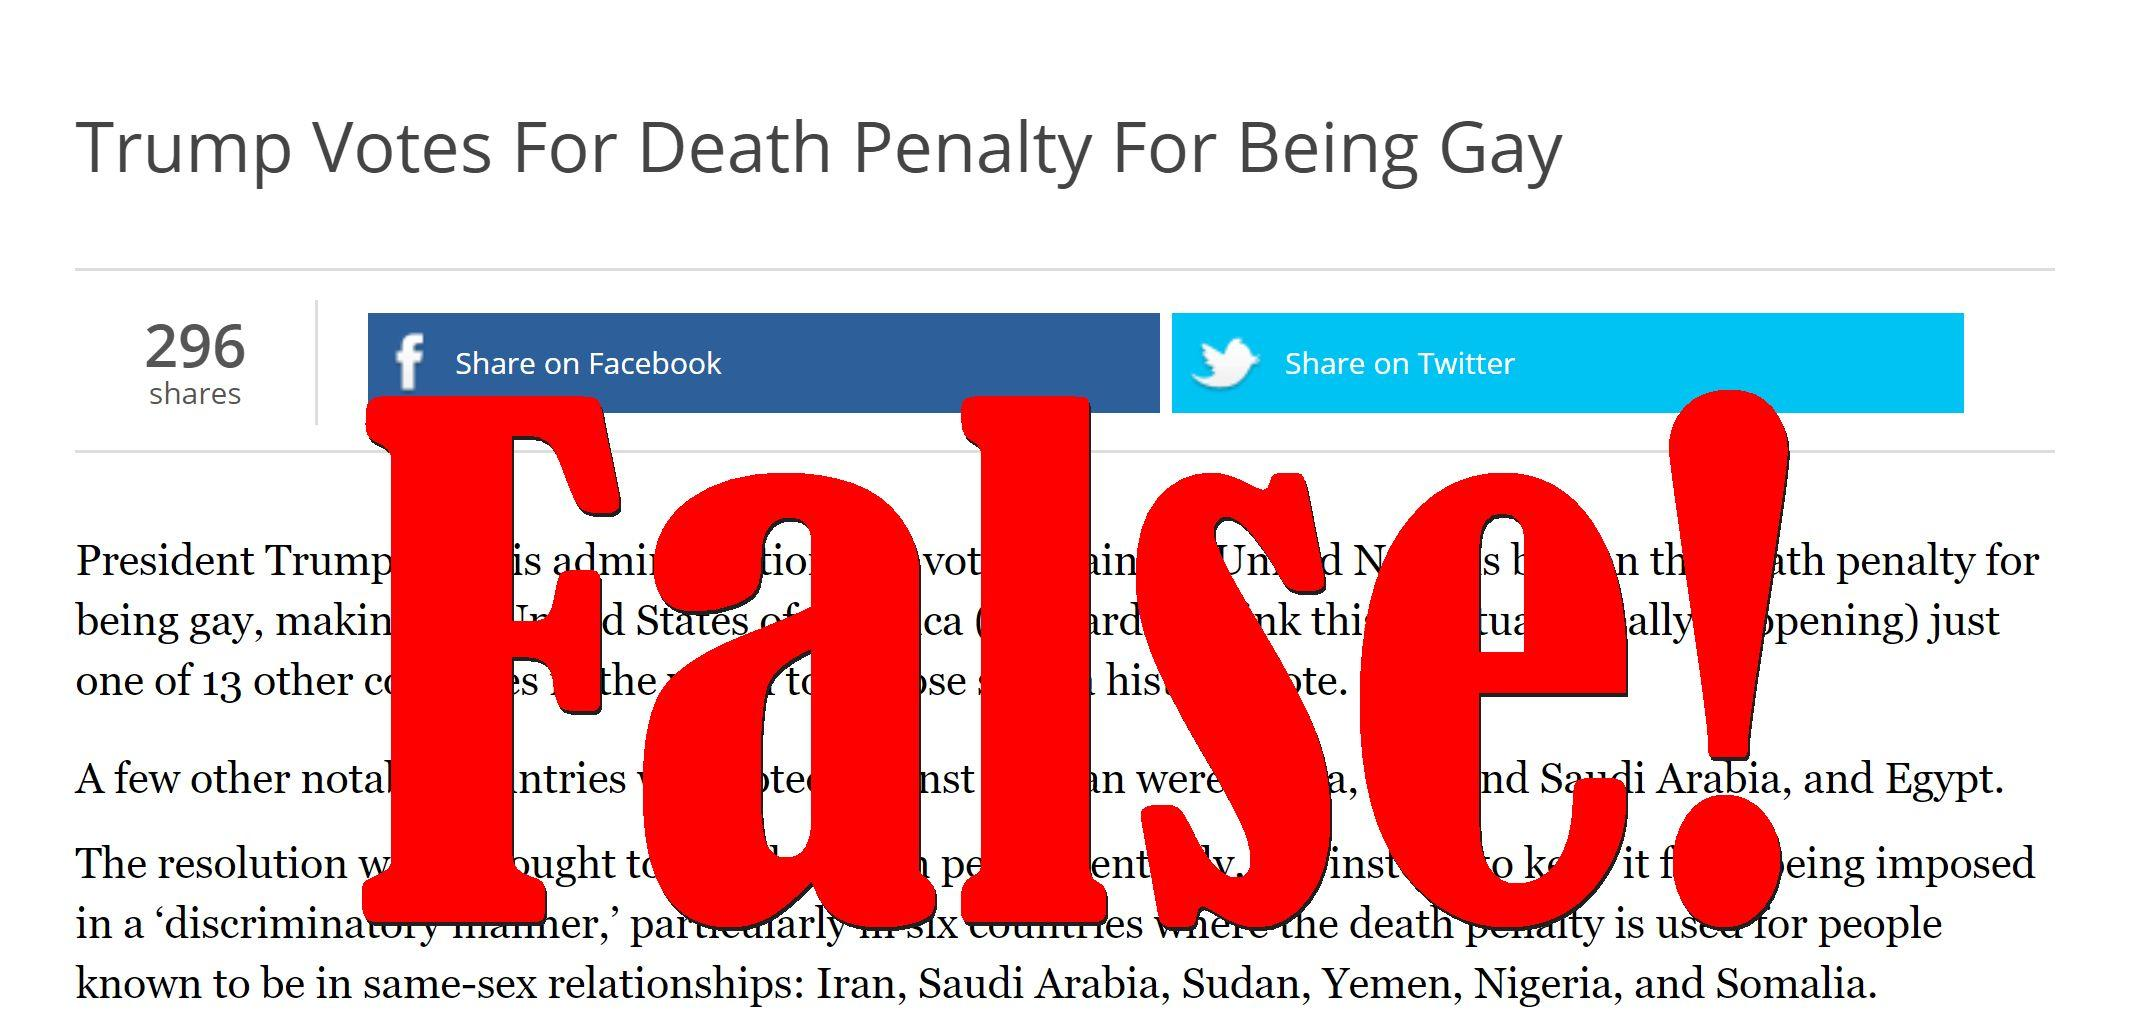 Fake News: Trump Did NOT Vote For Death Penalty For Being Gay